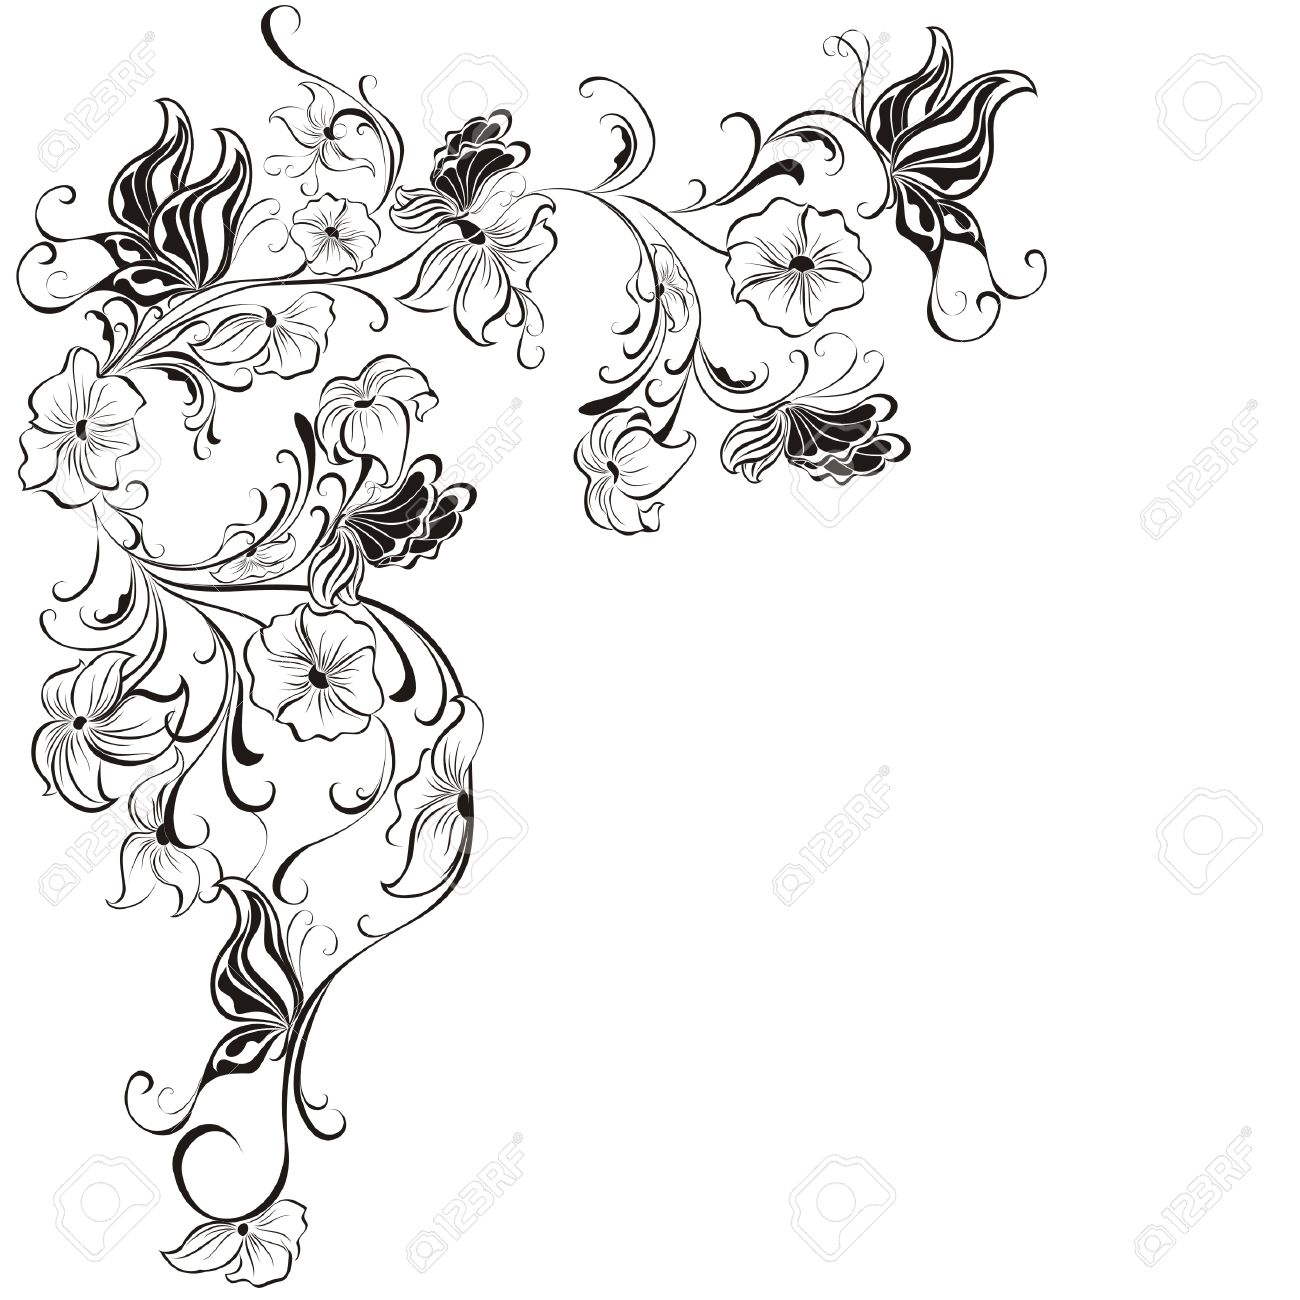 76 071 butterfly flower cliparts stock vector and royalty free